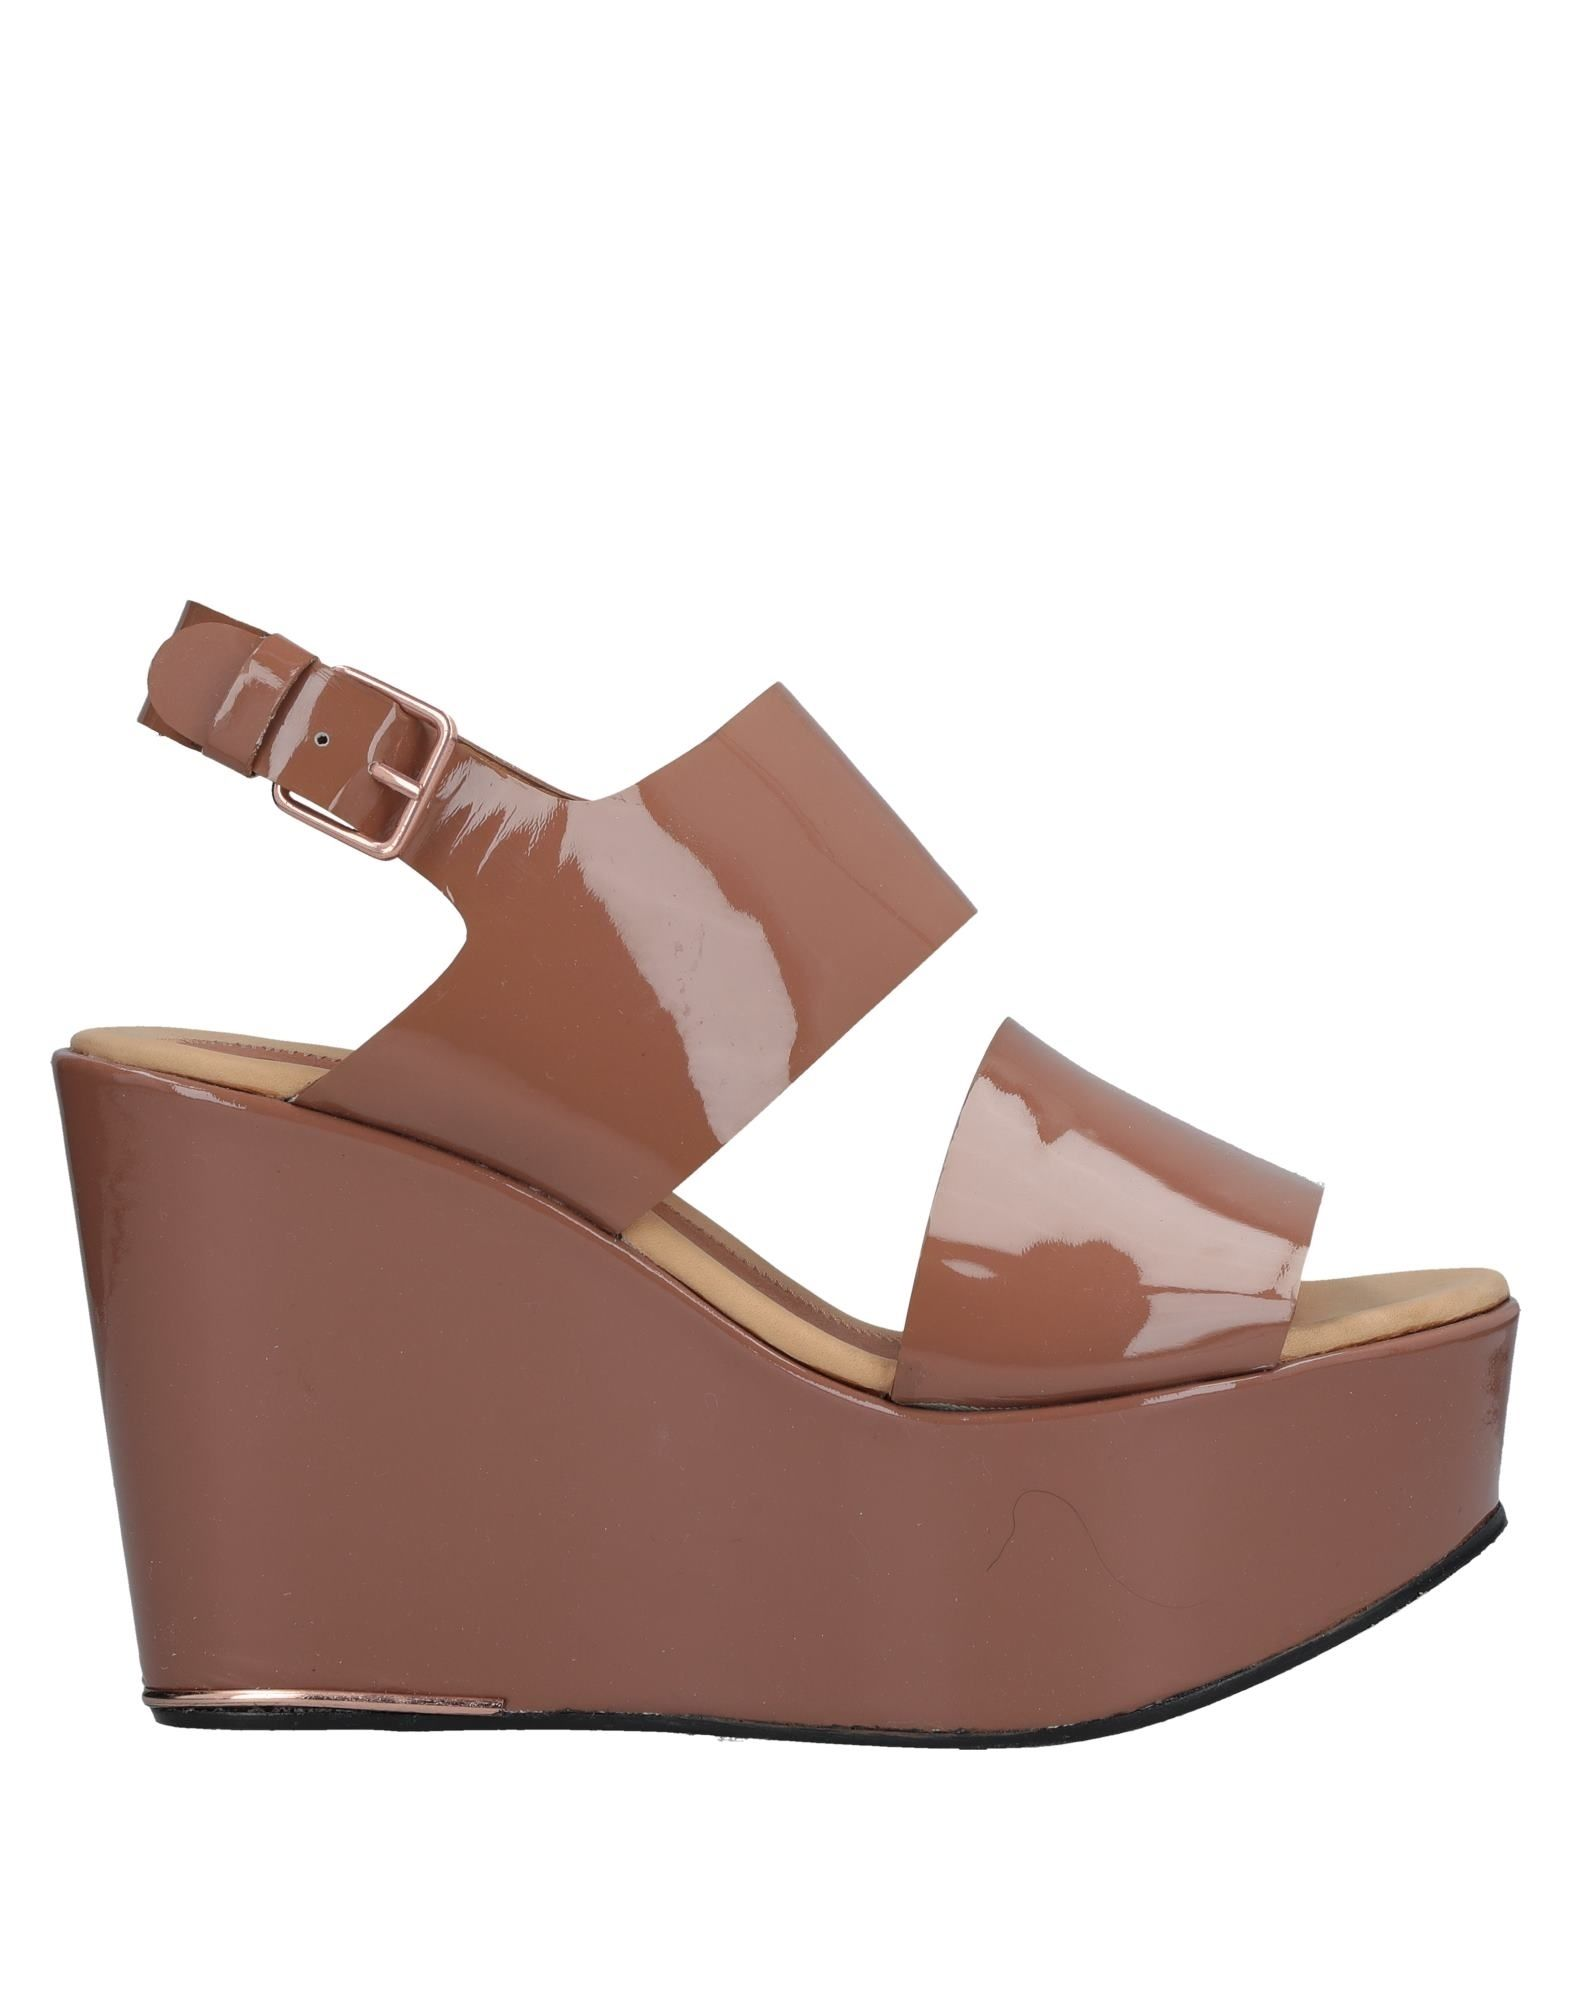 AVELON Sandals in Brown